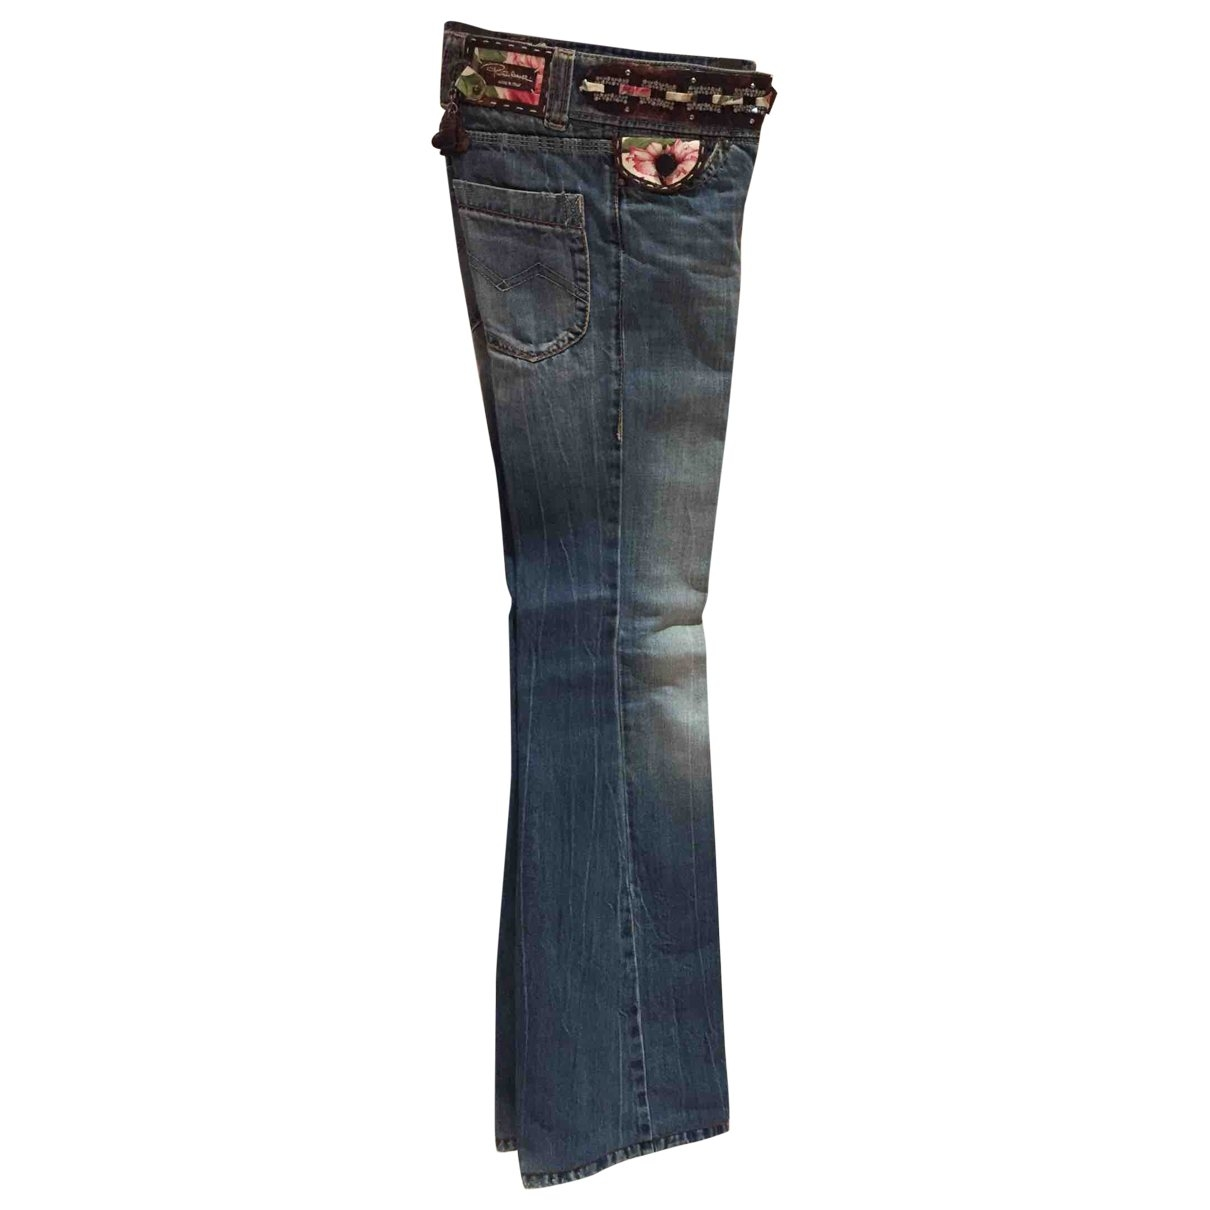 Roberto Cavalli \N Blue Cotton Jeans for Women 34 FR